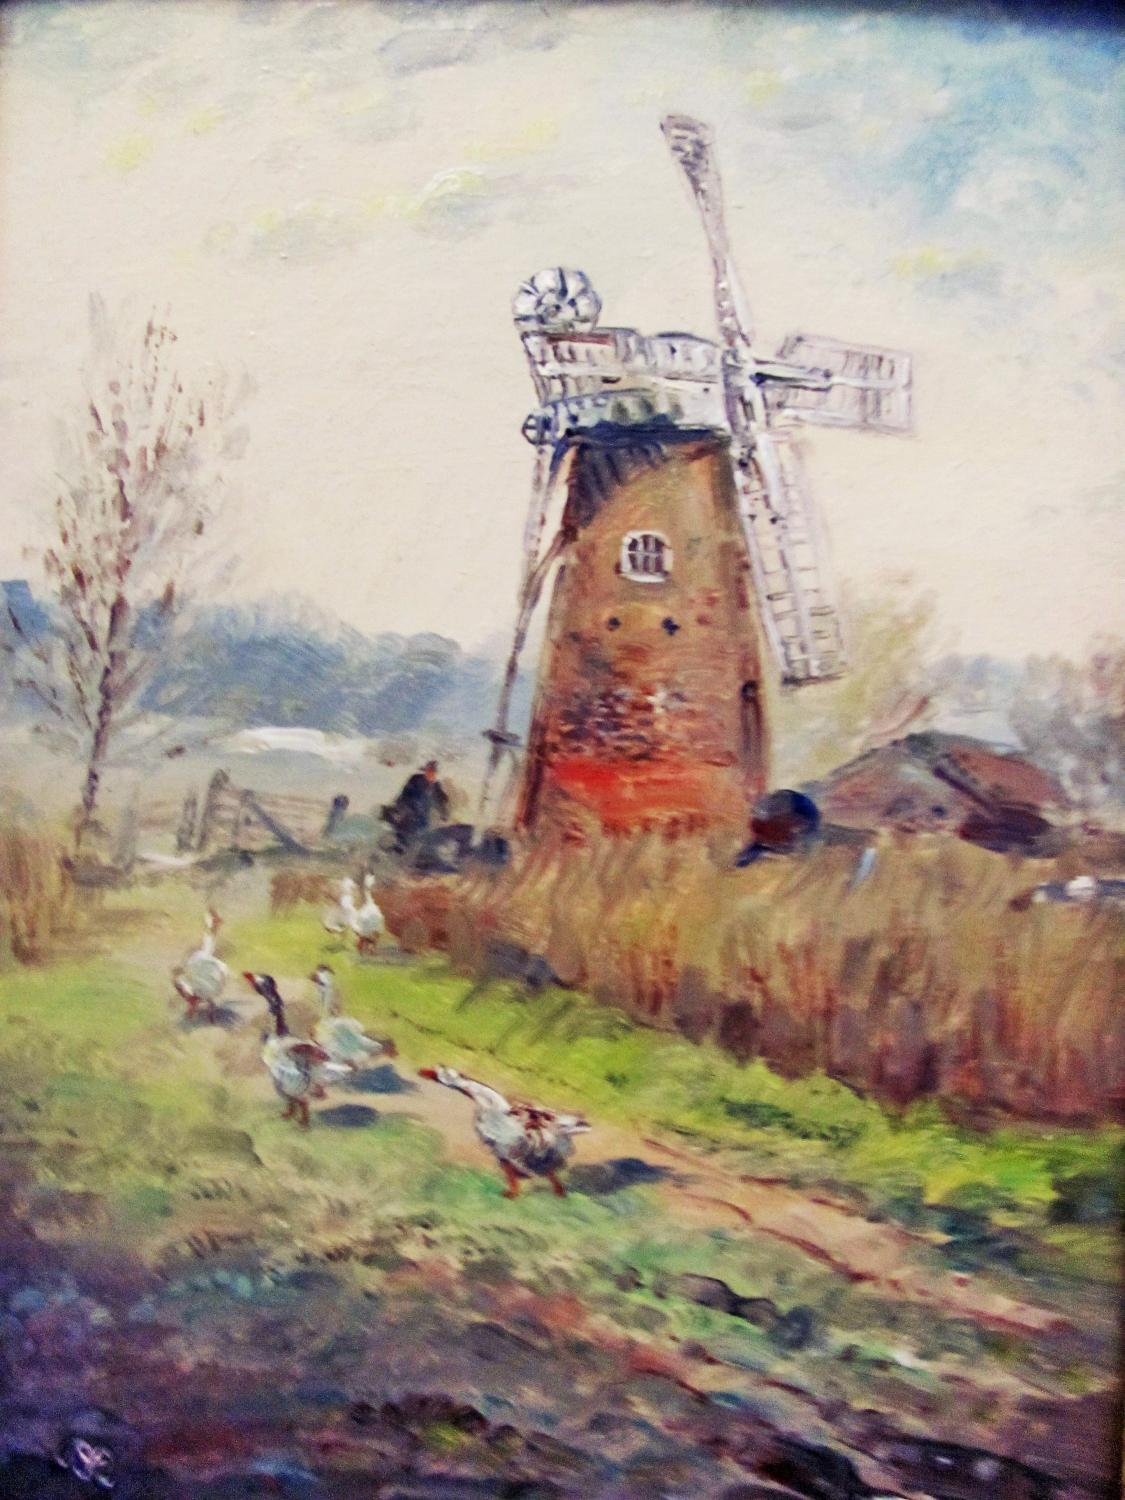 WIND_MILL_WITH_GEESE_-_FRAMED_ORIGINAL_OIL_PAINTING_JOHN_MACE_[Very_Good]